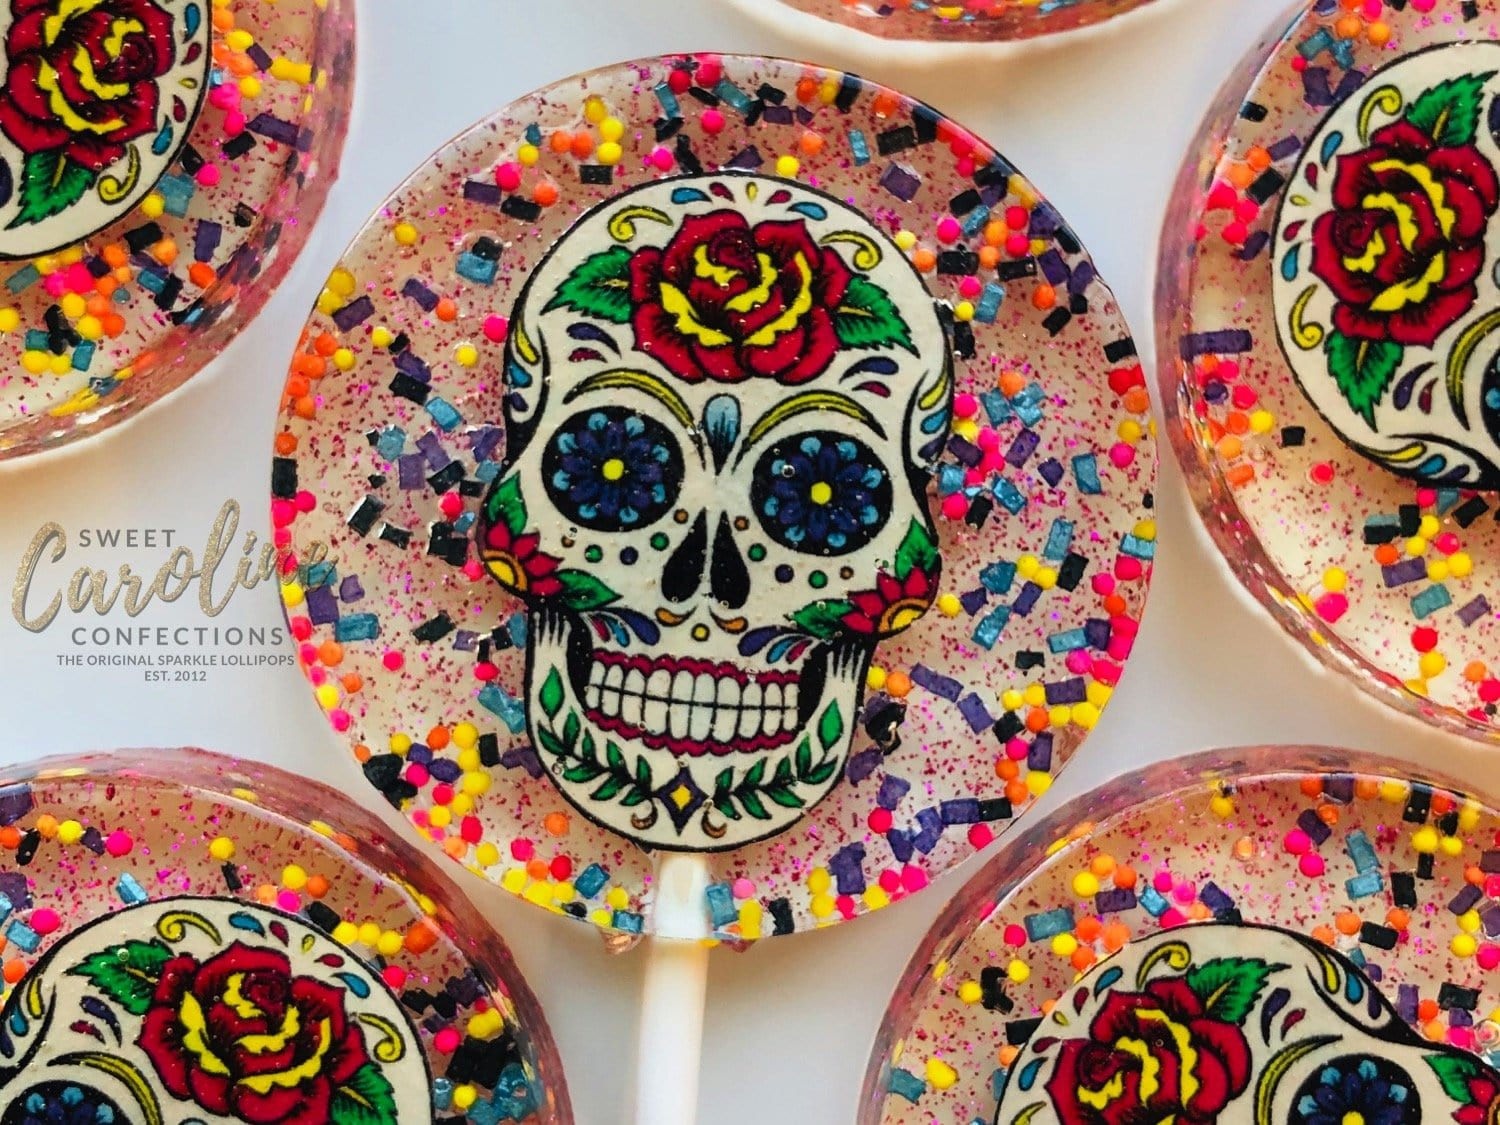 Dia de los Muertos Lollipops - Set of 6 - Sweet Caroline Confections | The Original Sparkle Lollipops